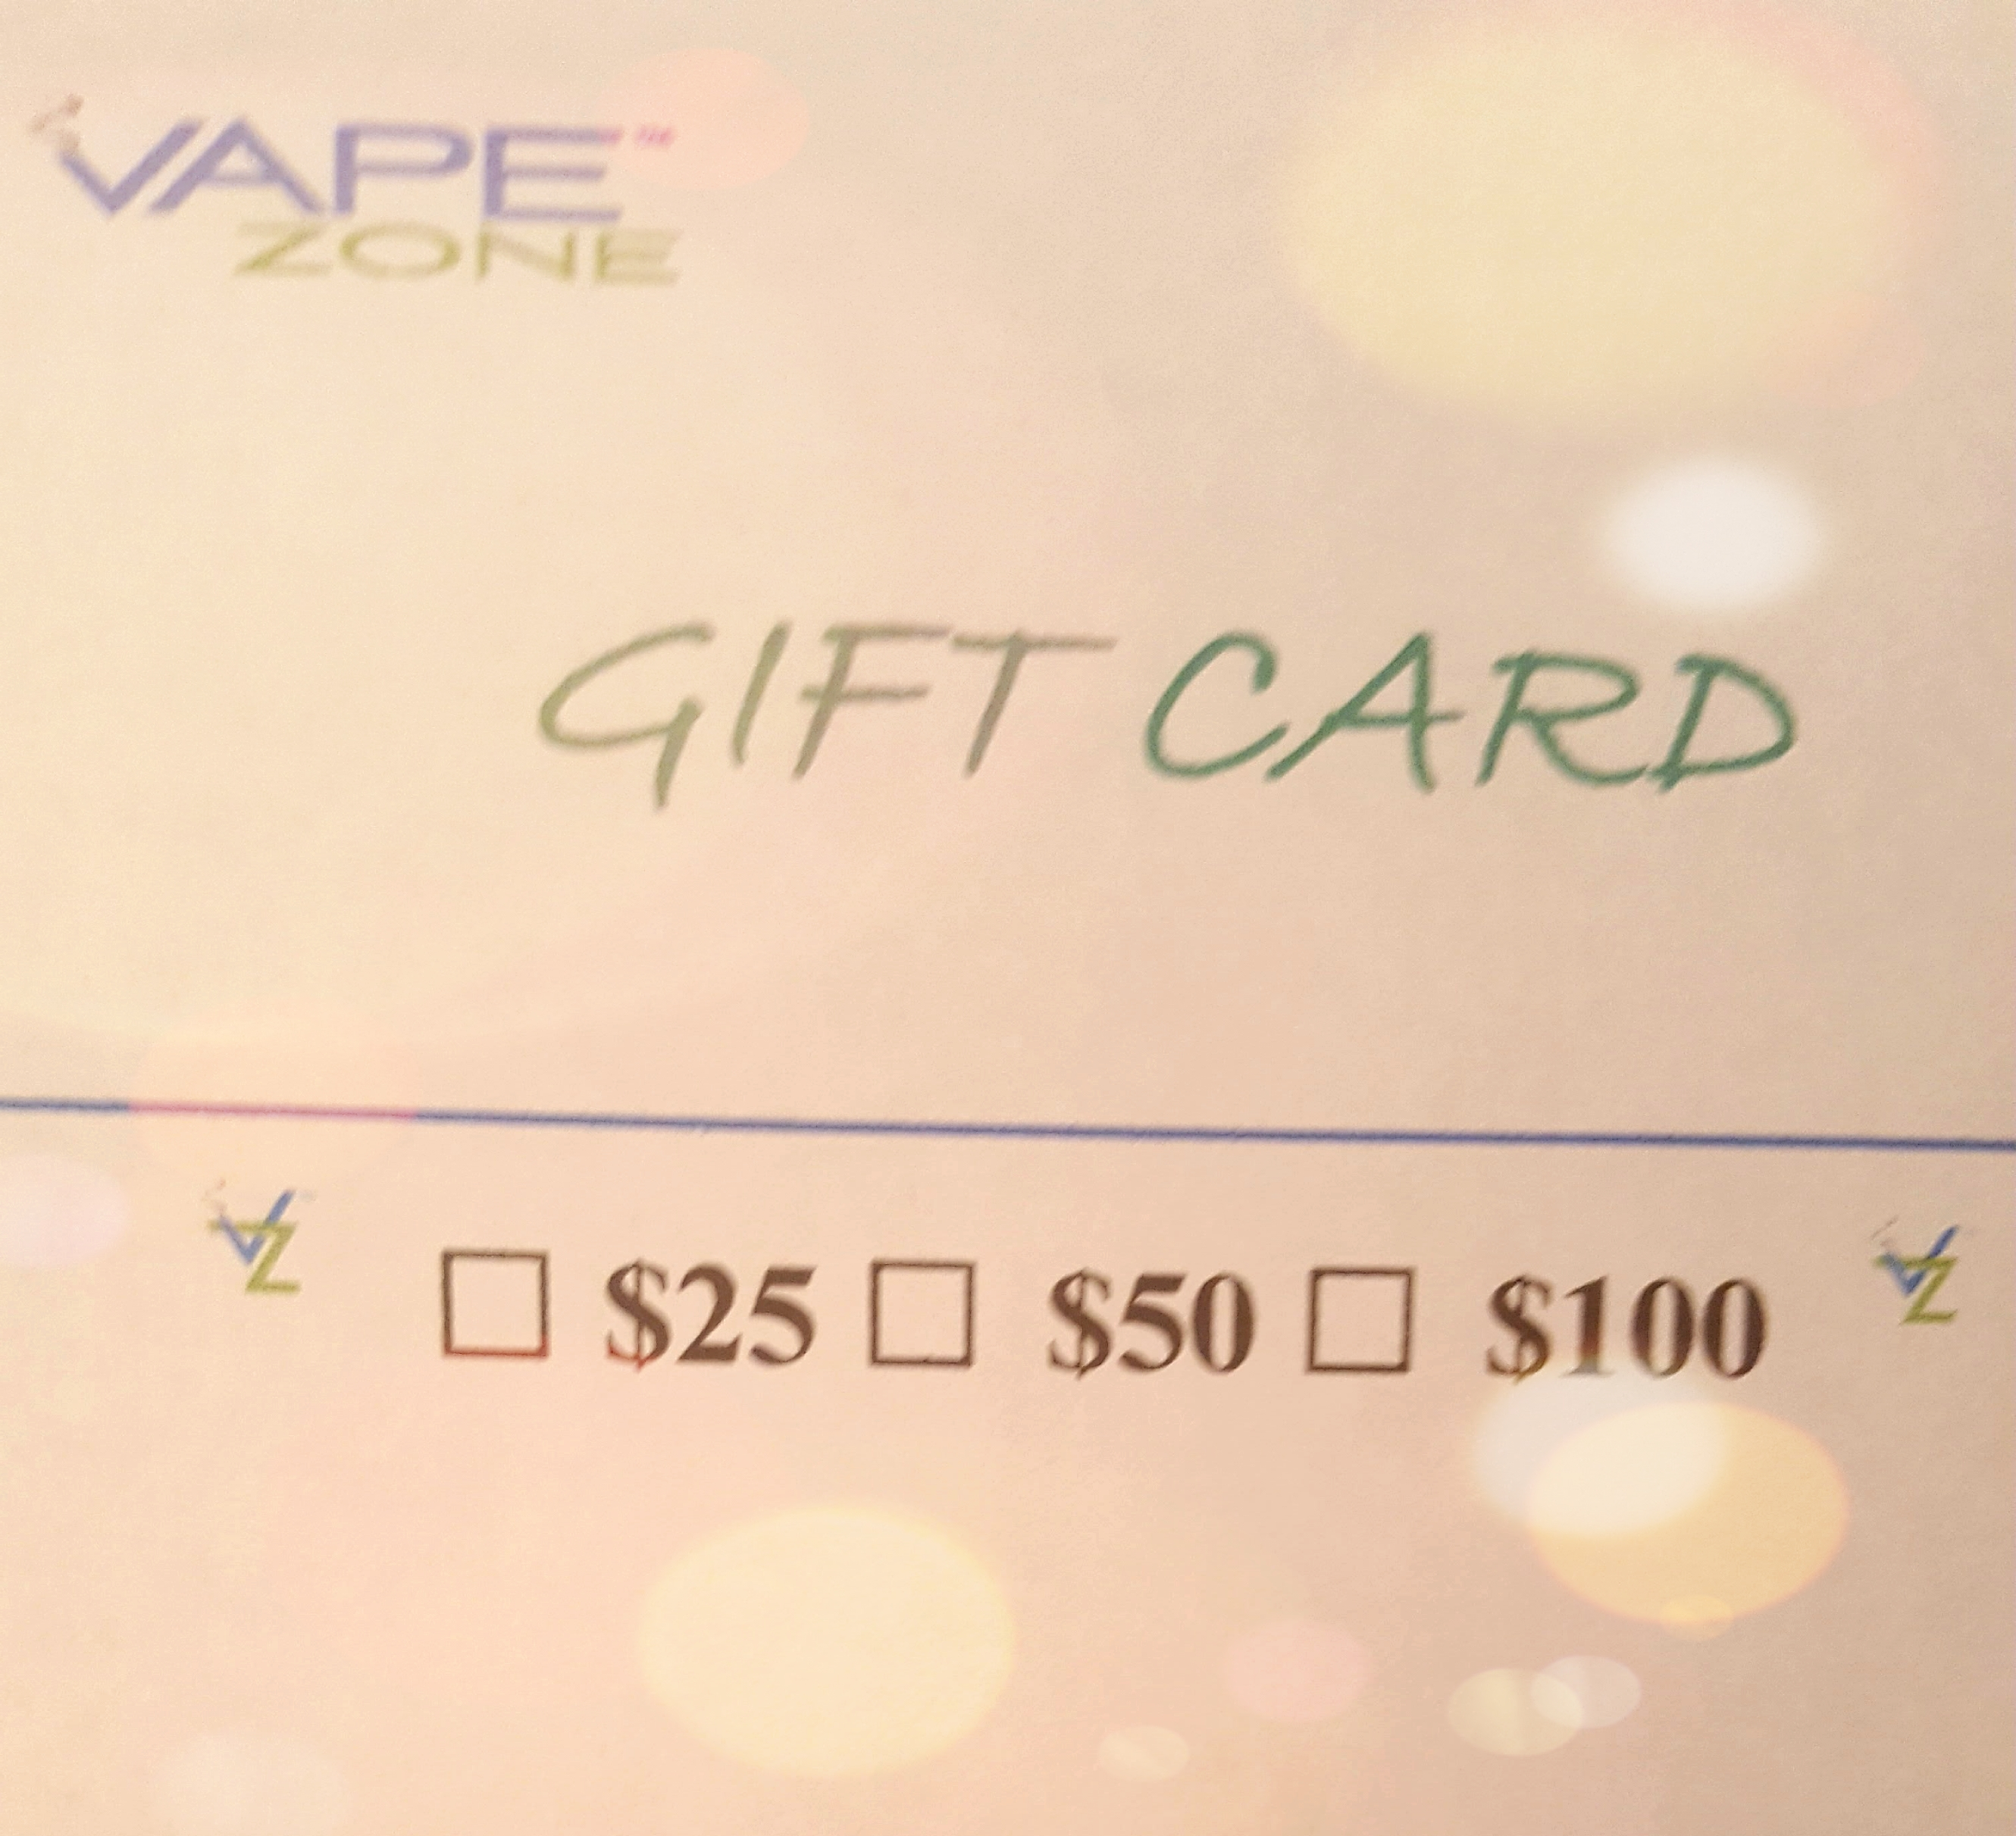 Vapezone gift certificates available vapezone vape e vapezones gift certificates xflitez Gallery